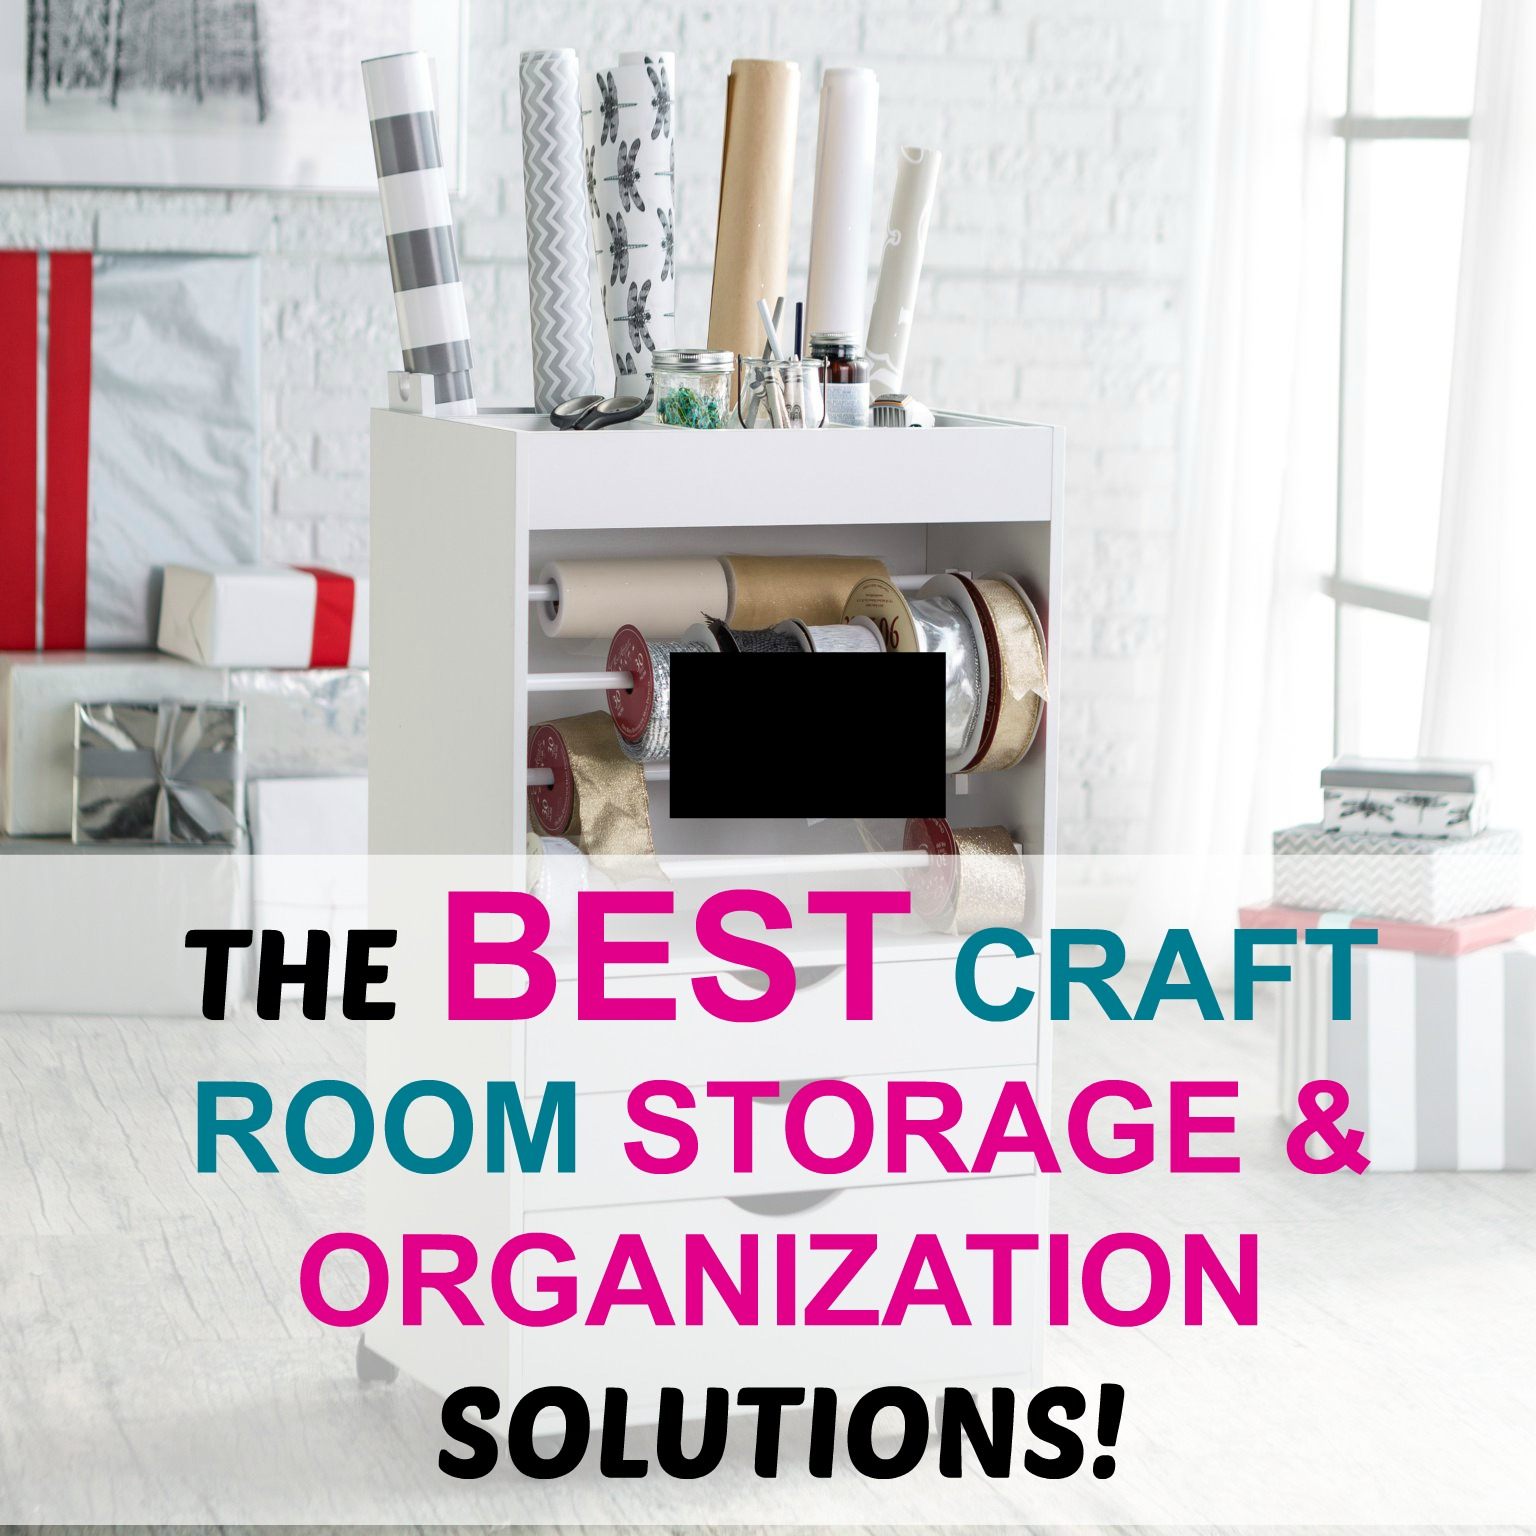 19 Craft Storage Solutions: How to Final Organize Your Craft Room!